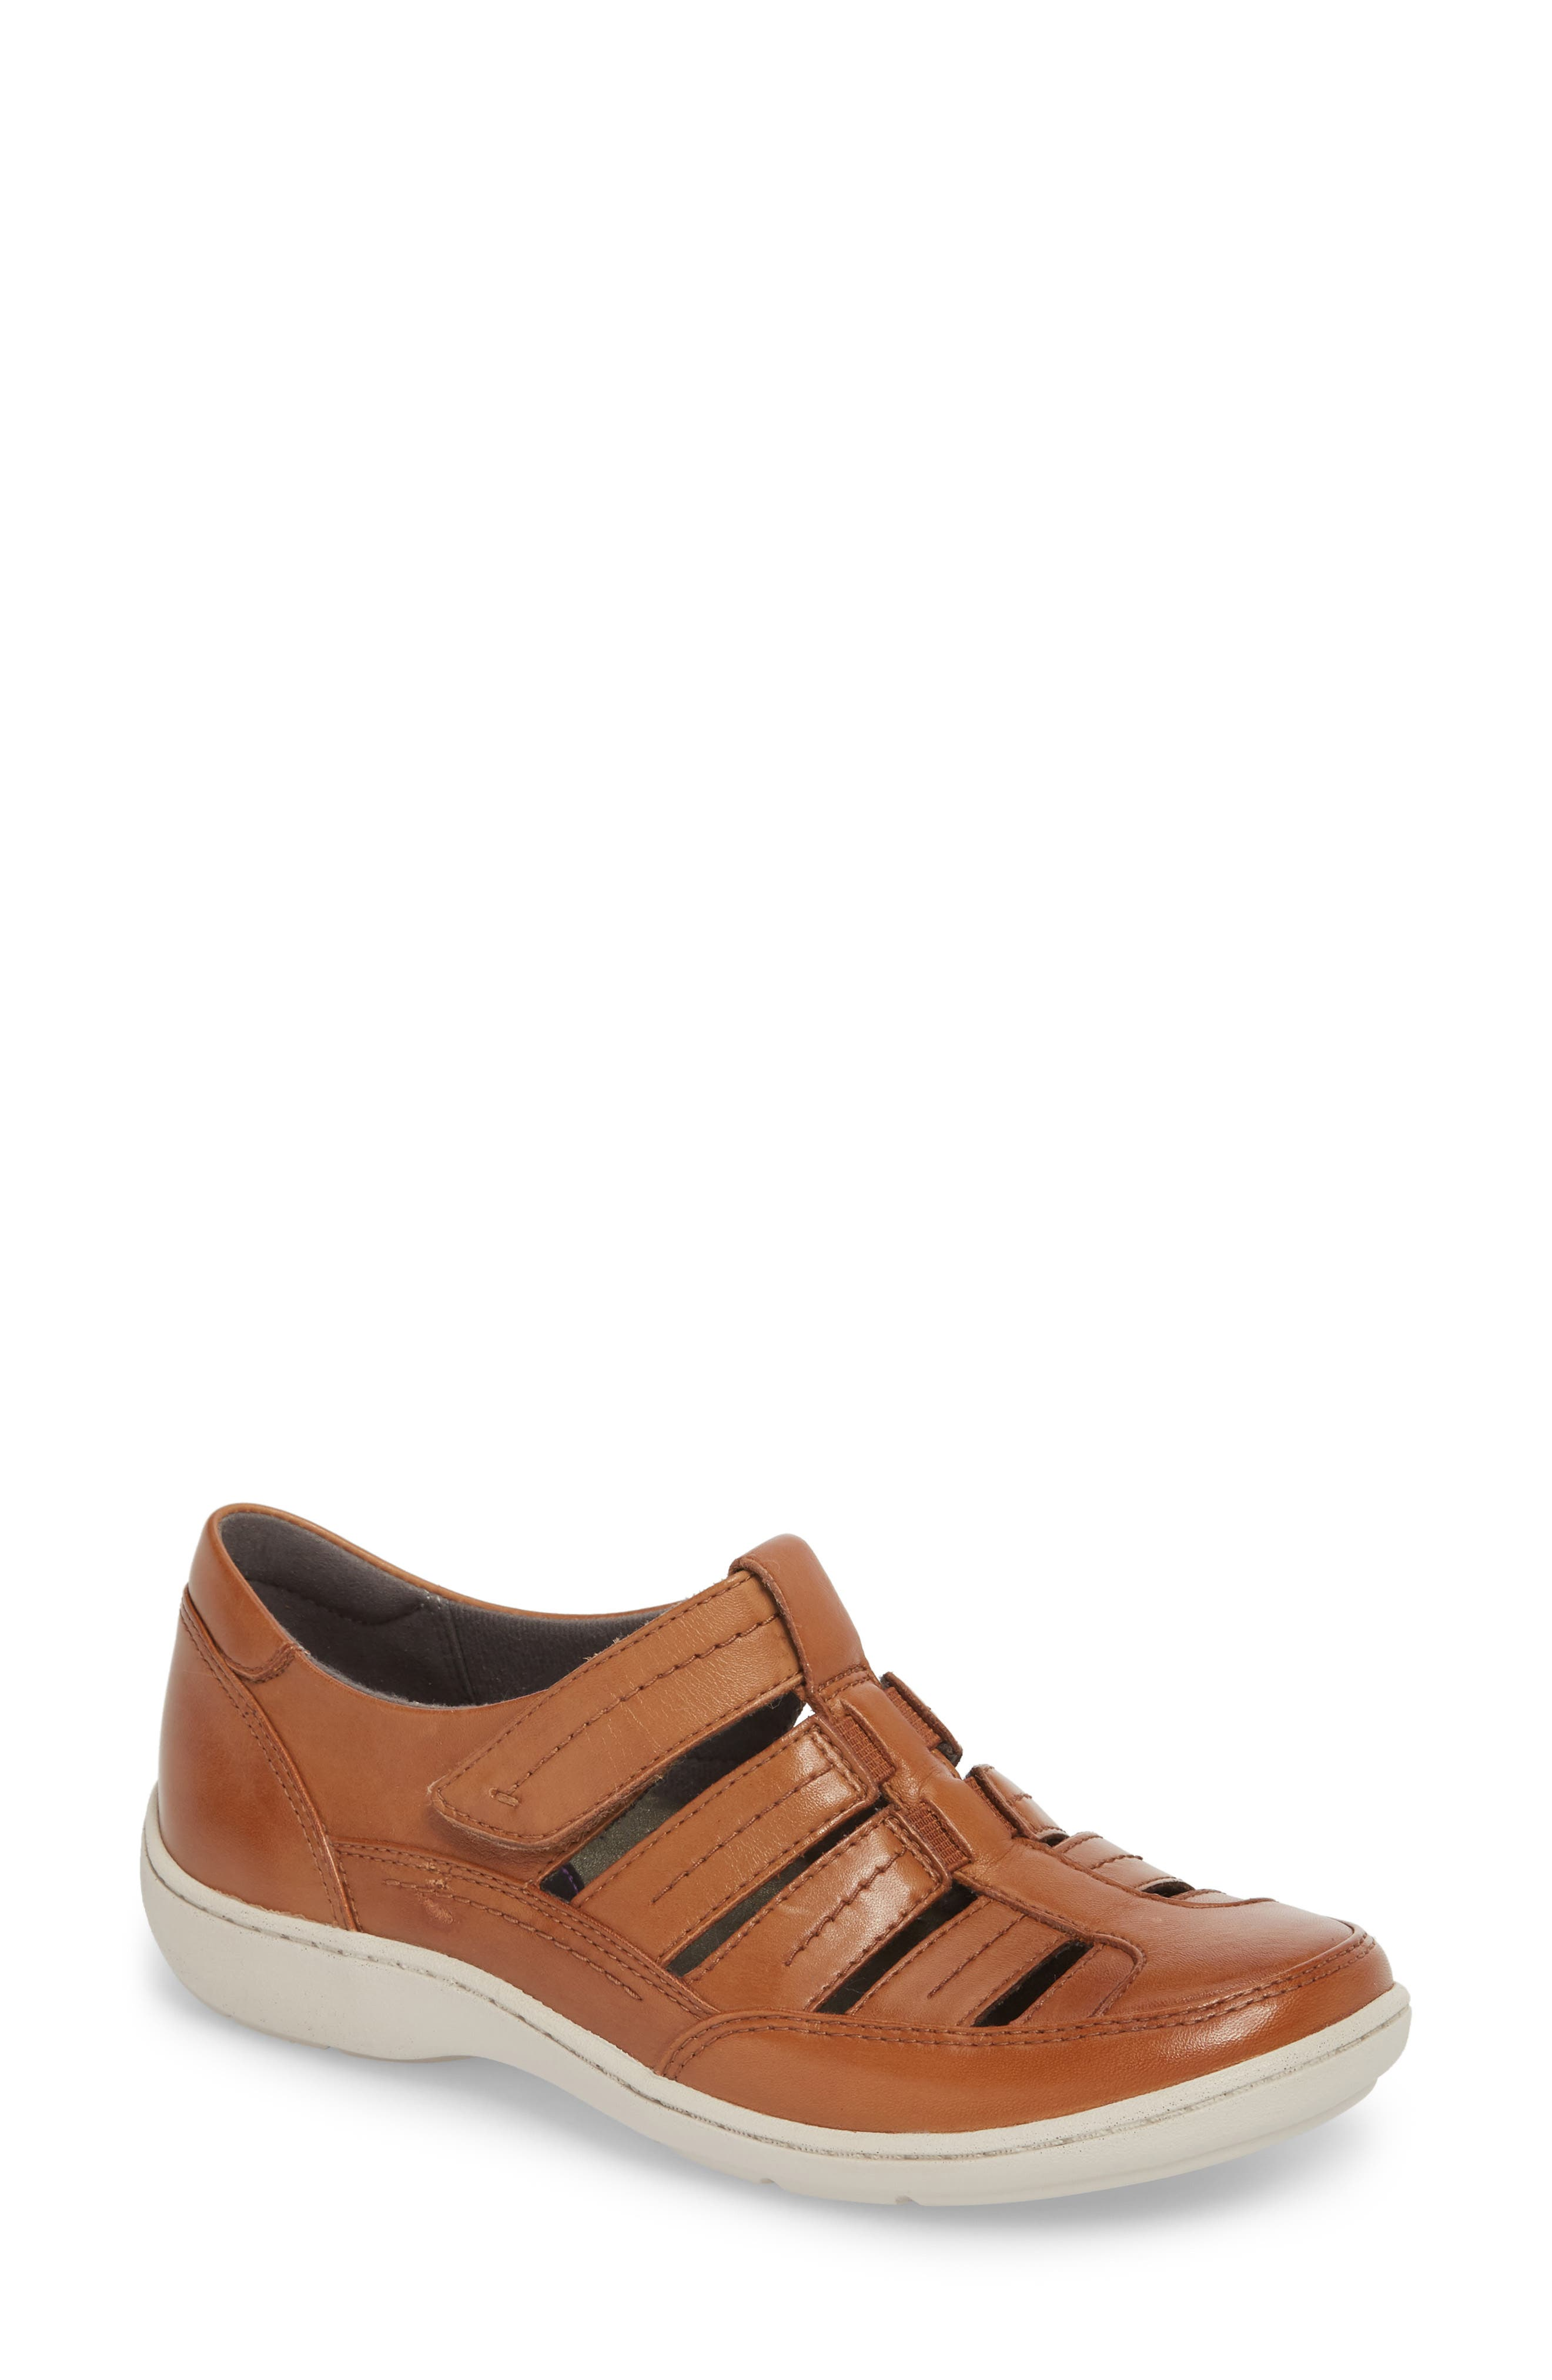 Beaumont Sneaker,                             Main thumbnail 1, color,                             ALPACA LEATHER